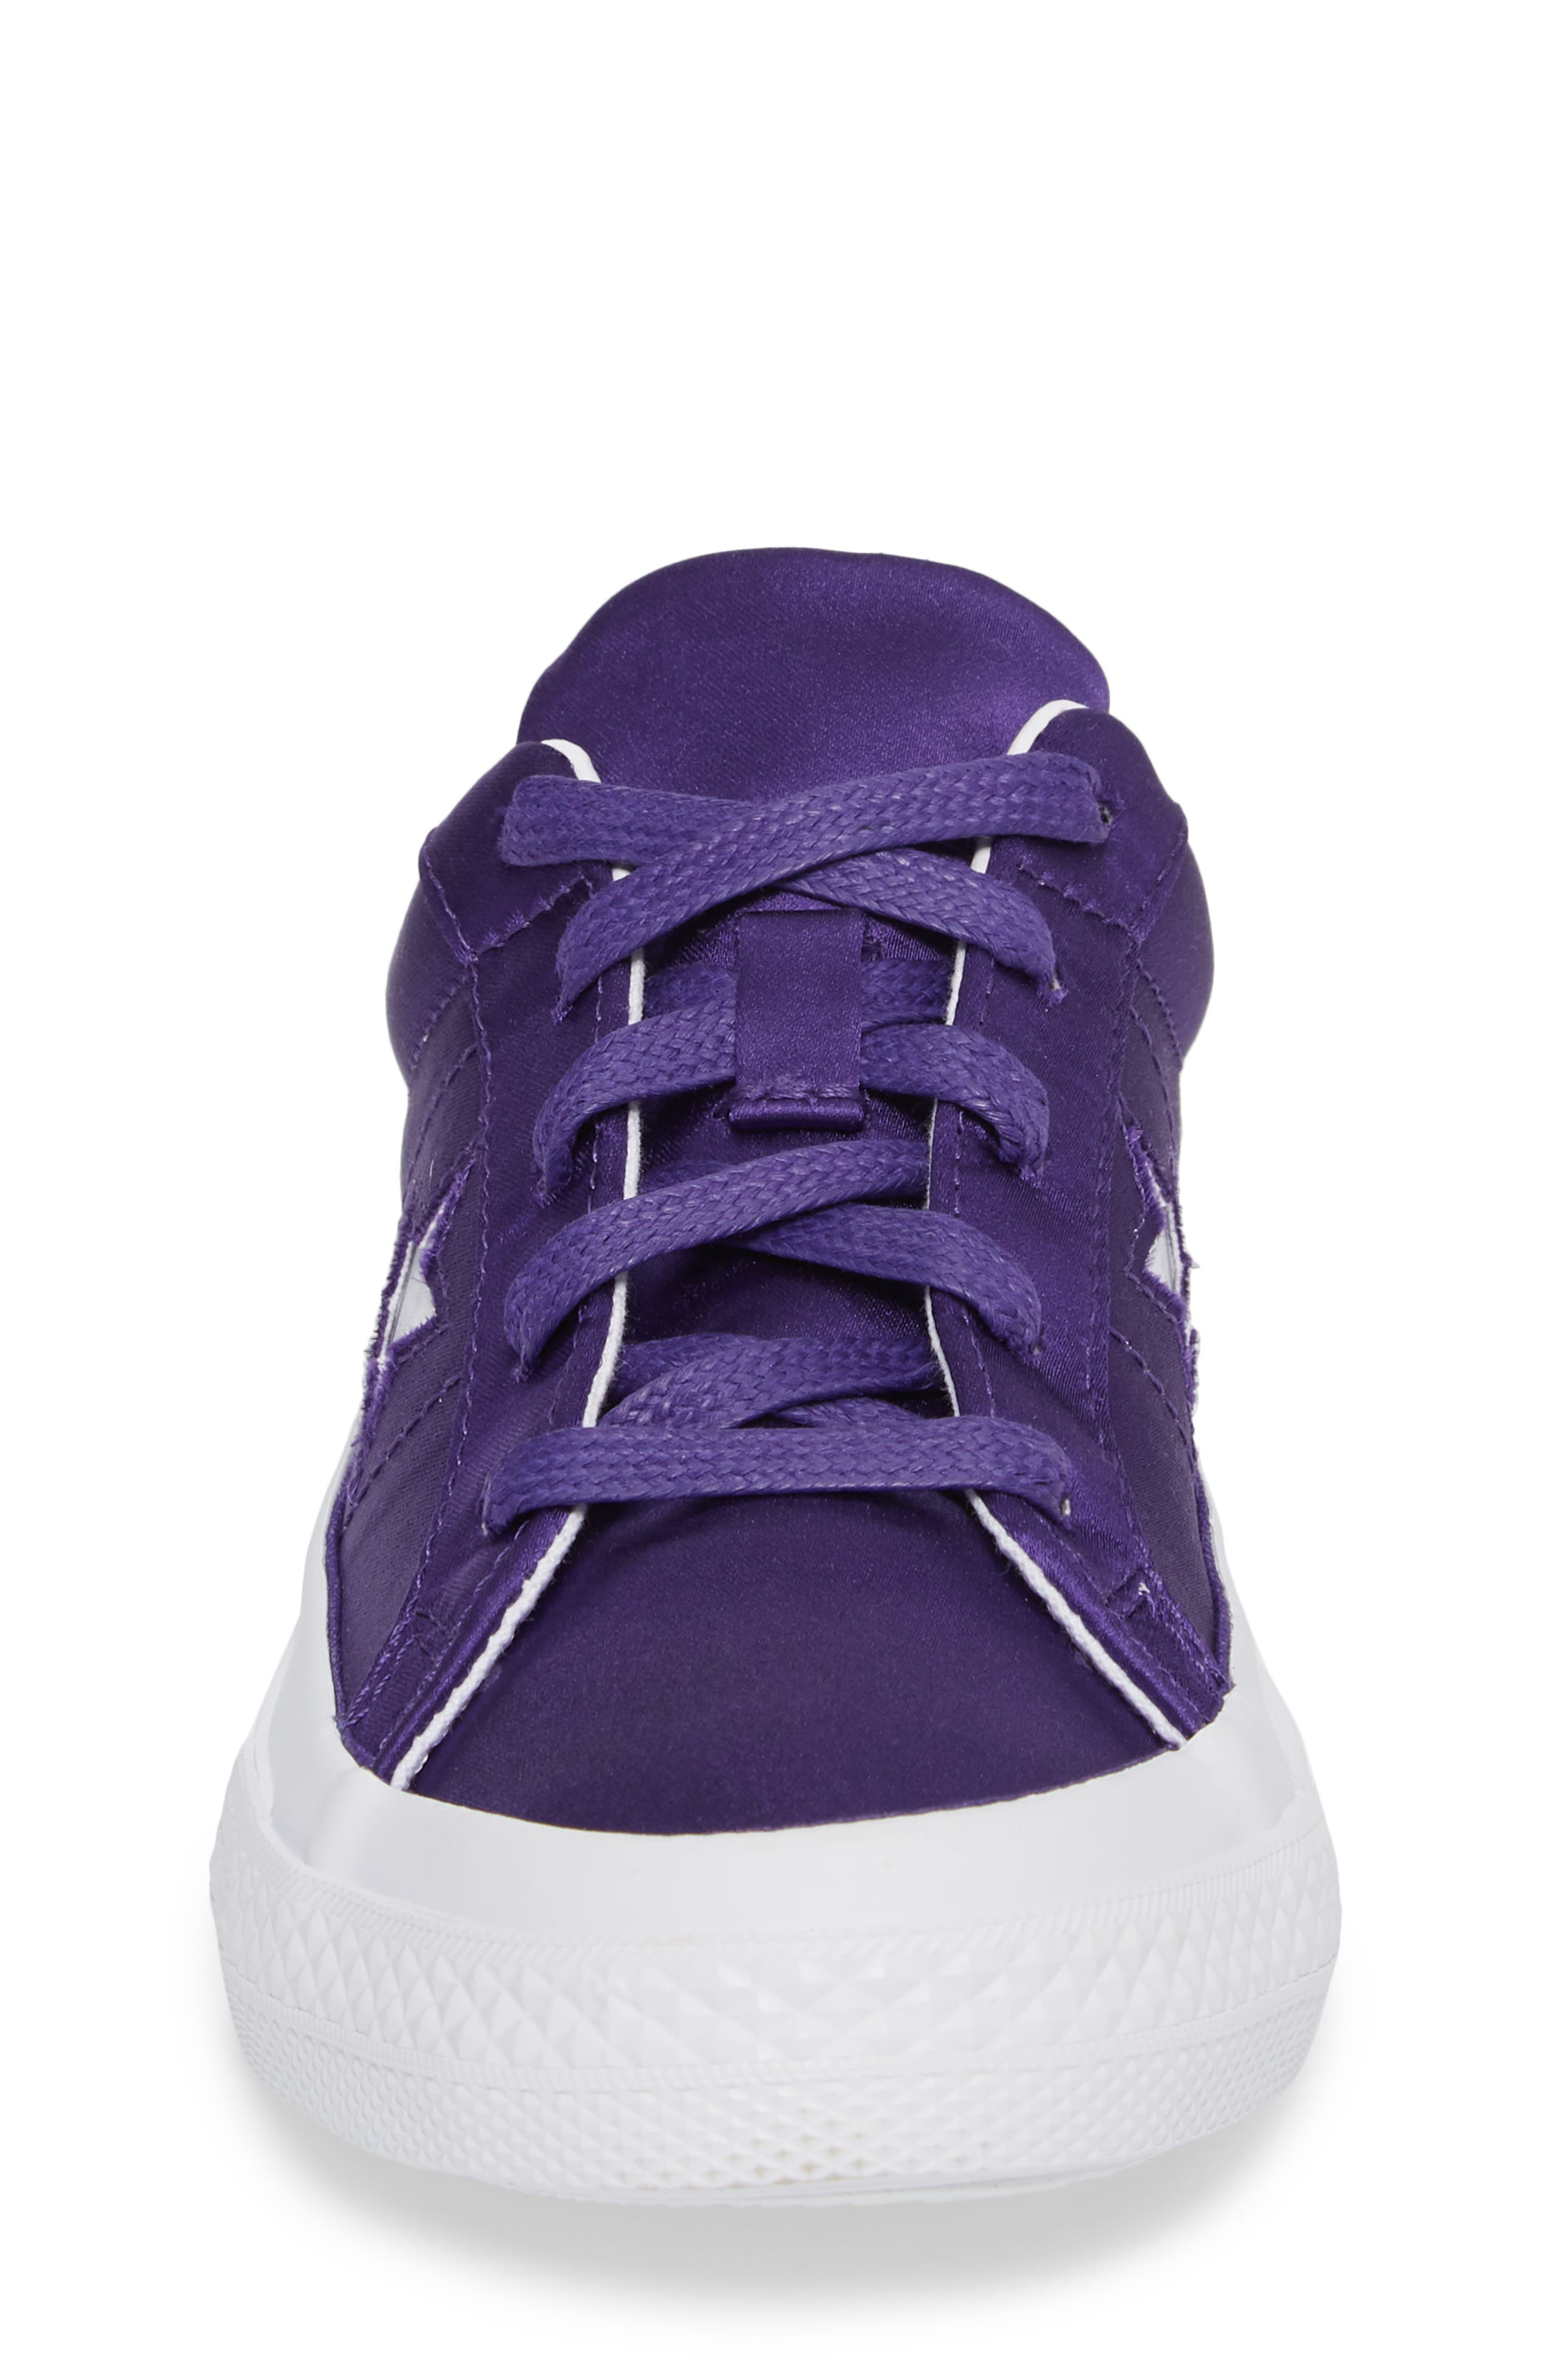 Chuck Taylor<sup>®</sup> All Star<sup>®</sup> One Star Satin Low Top Sneaker,                             Alternate thumbnail 4, color,                             510